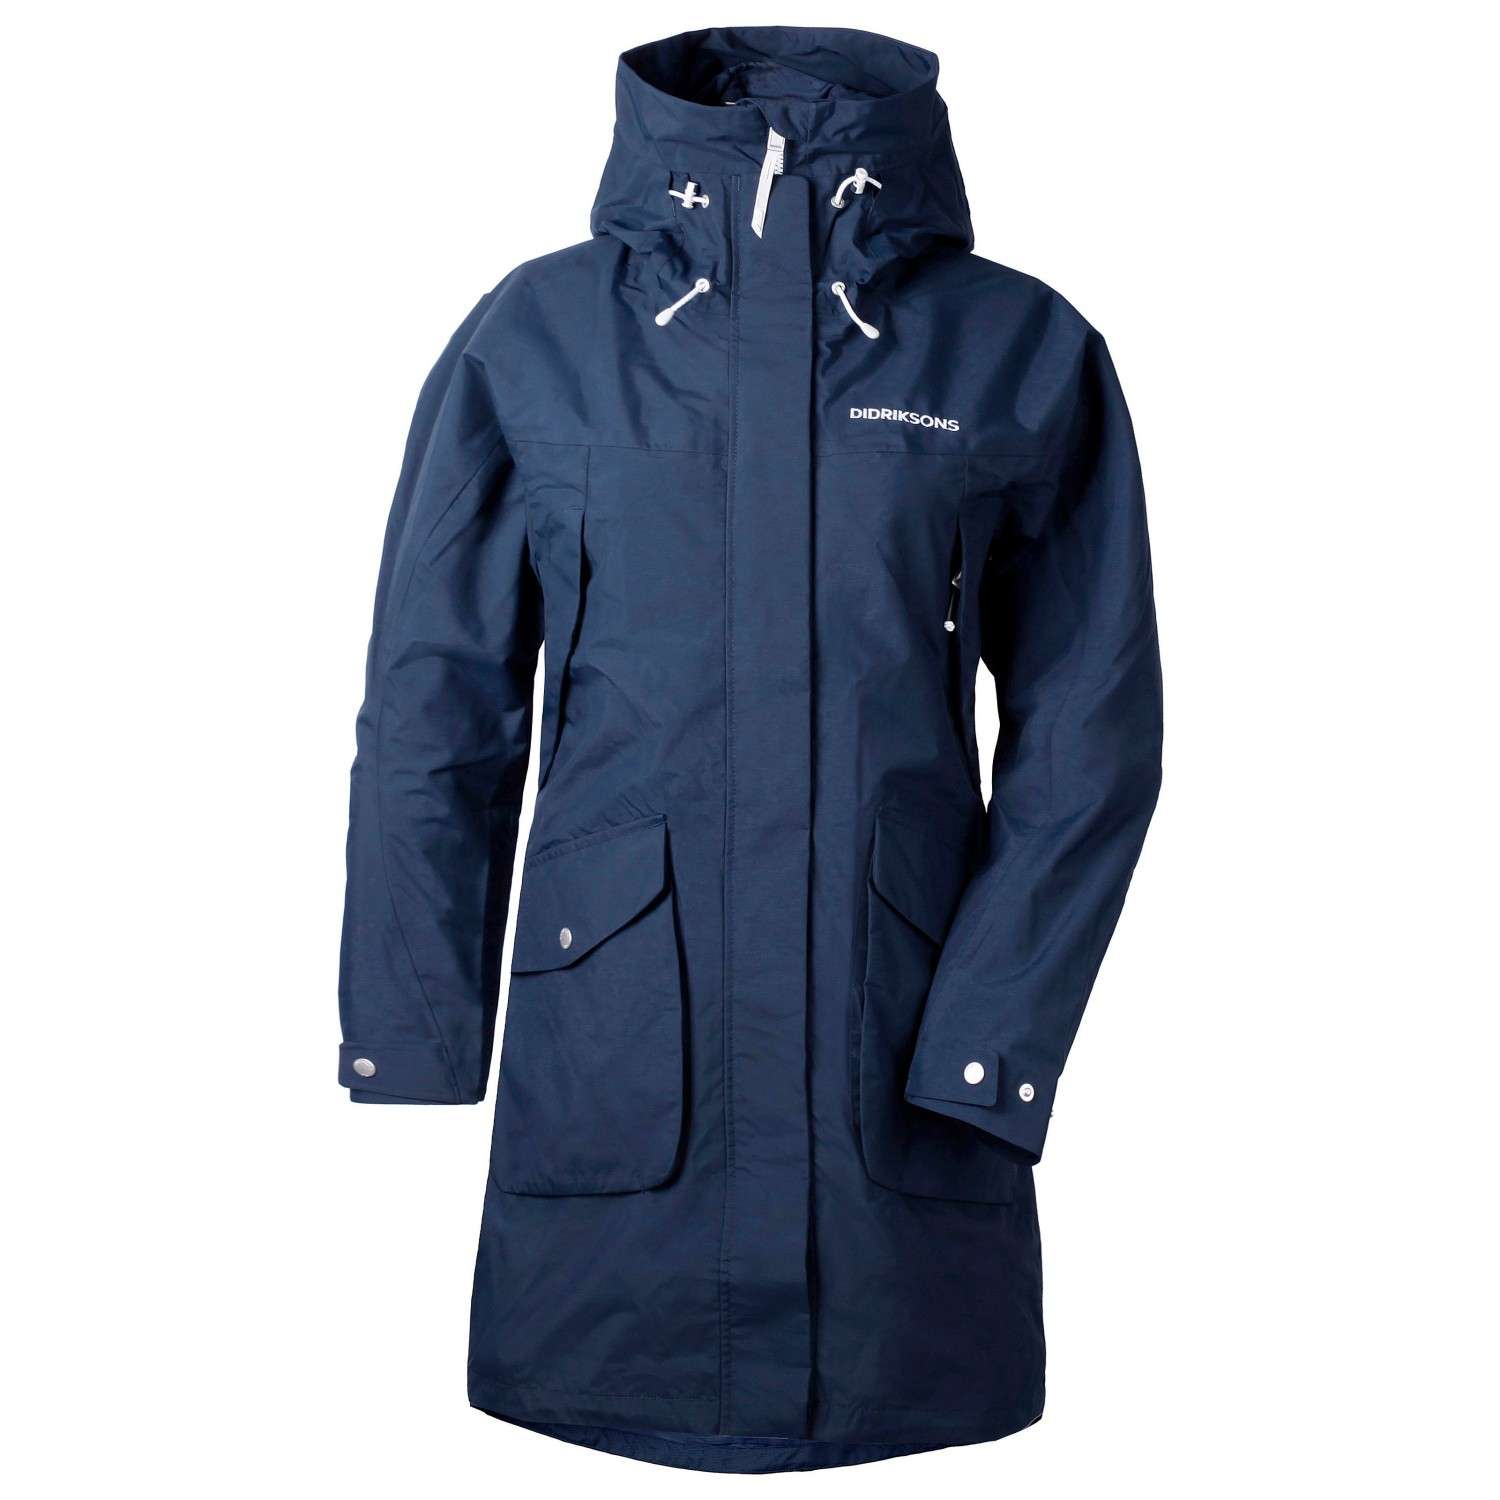 9d7ef163 Didriksons Thelma Parka - Coat Women's | Free UK Delivery ...